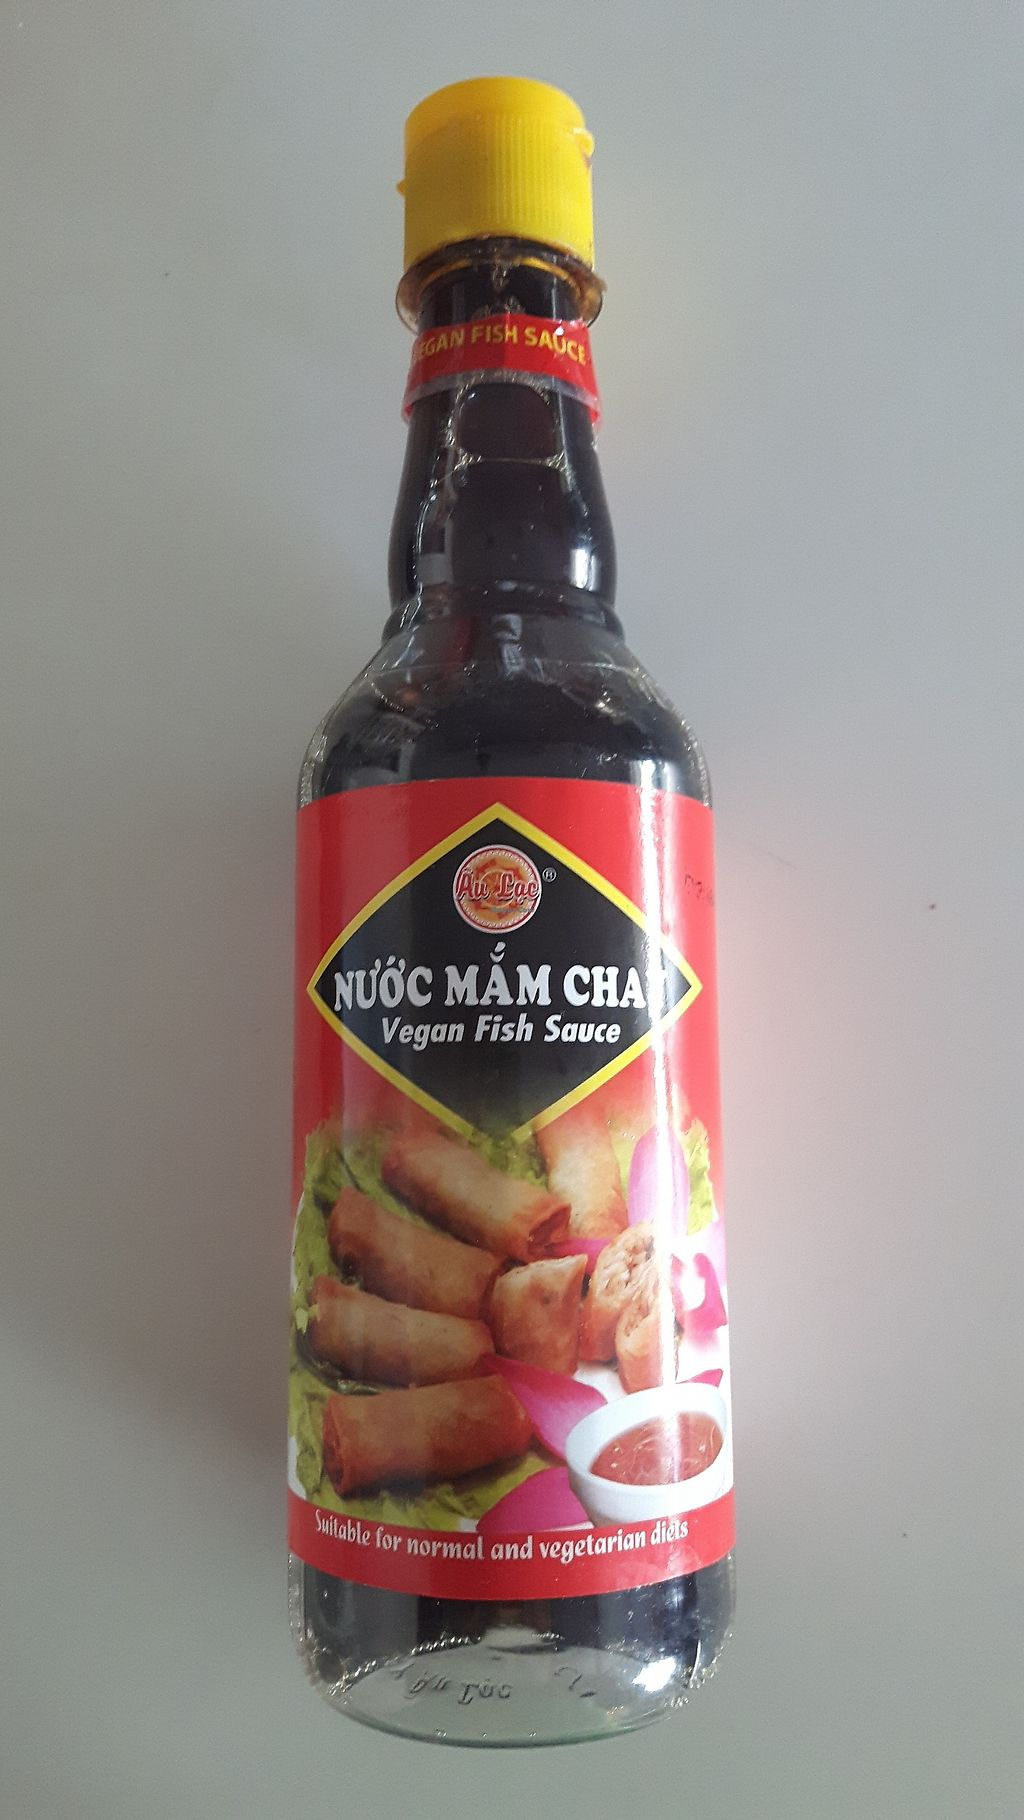 "Photo of Thien Dang Vegetarian  by <a href=""/members/profile/Taro"">Taro</a> <br/>Vegan Fish Sauce!  Got this from the grocery section, the missing ingredient in my homemade Kimchi. Taste exactly like the other one <br/> April 17, 2018  - <a href='/contact/abuse/image/33714/387325'>Report</a>"